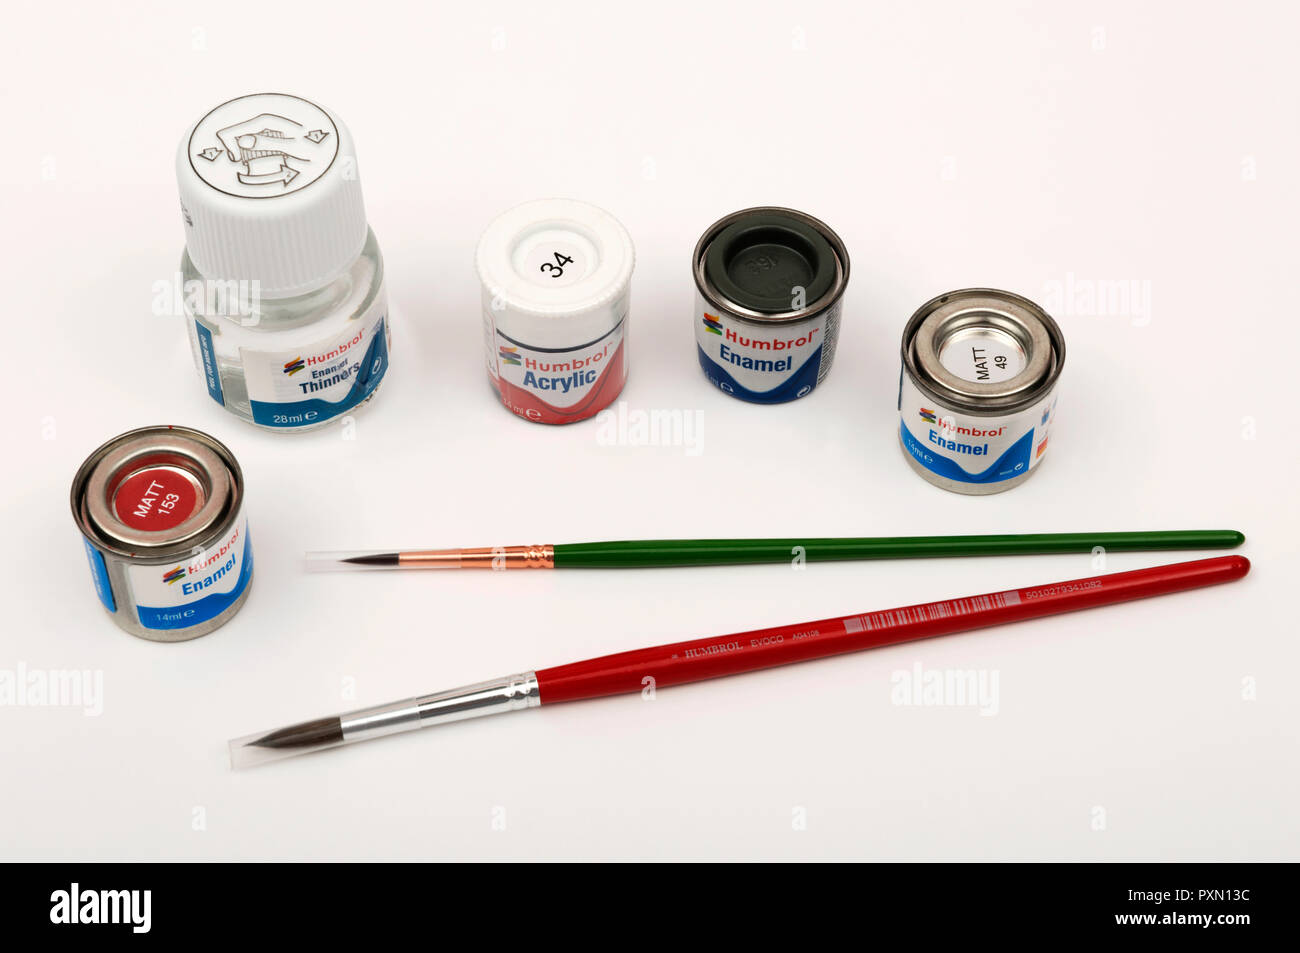 Humbrol modelling paints and brushes - Stock Image